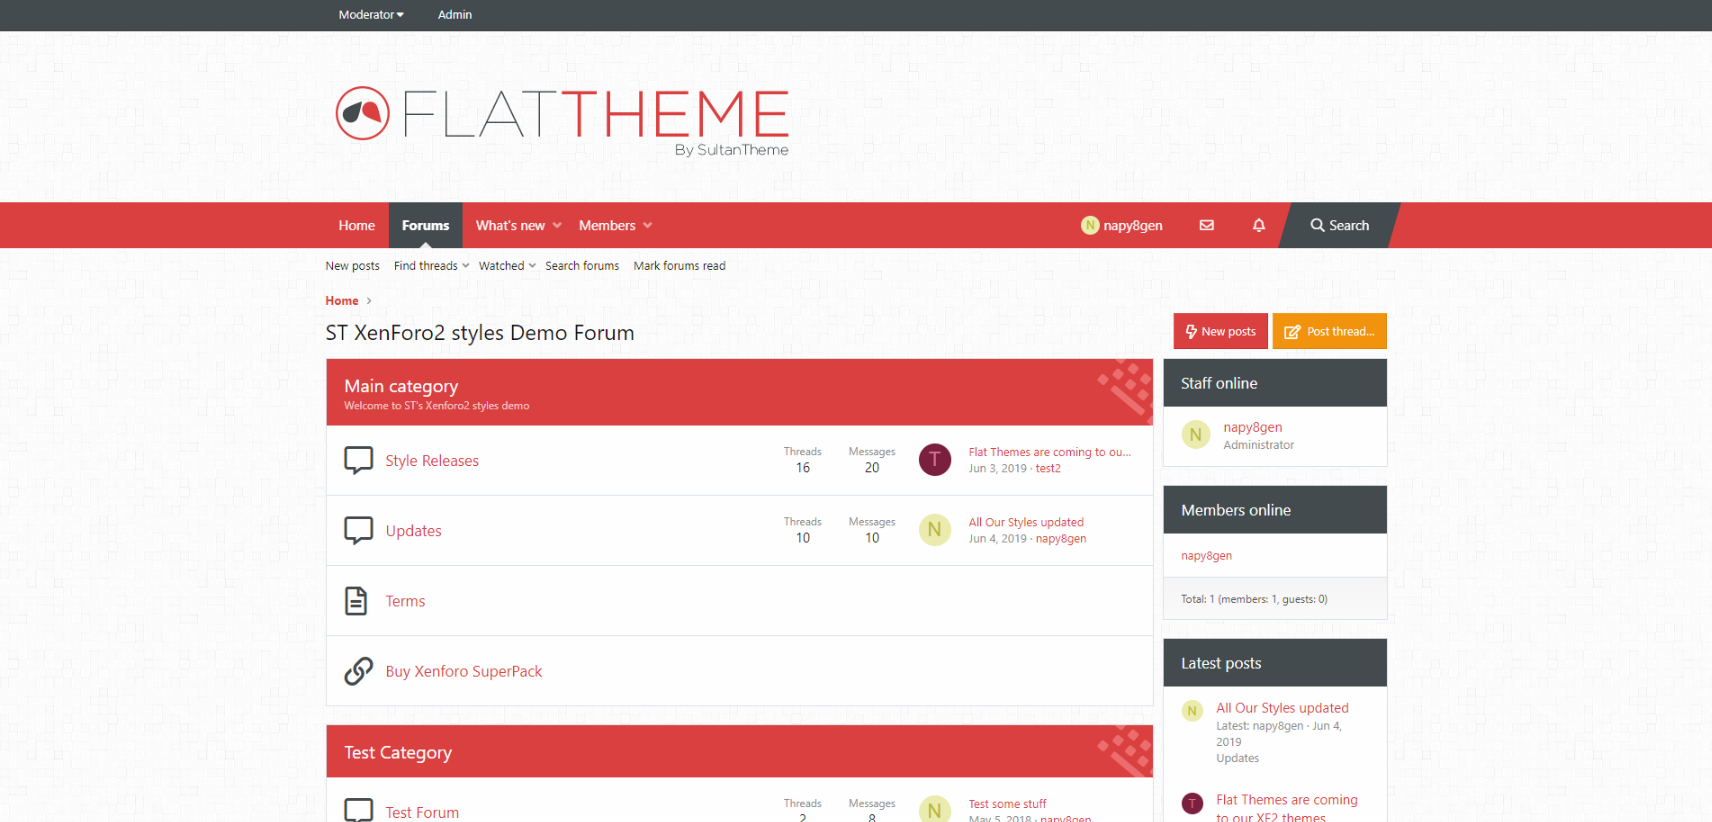 ft cinnabarRed - Flat Themes for xenforo2 released